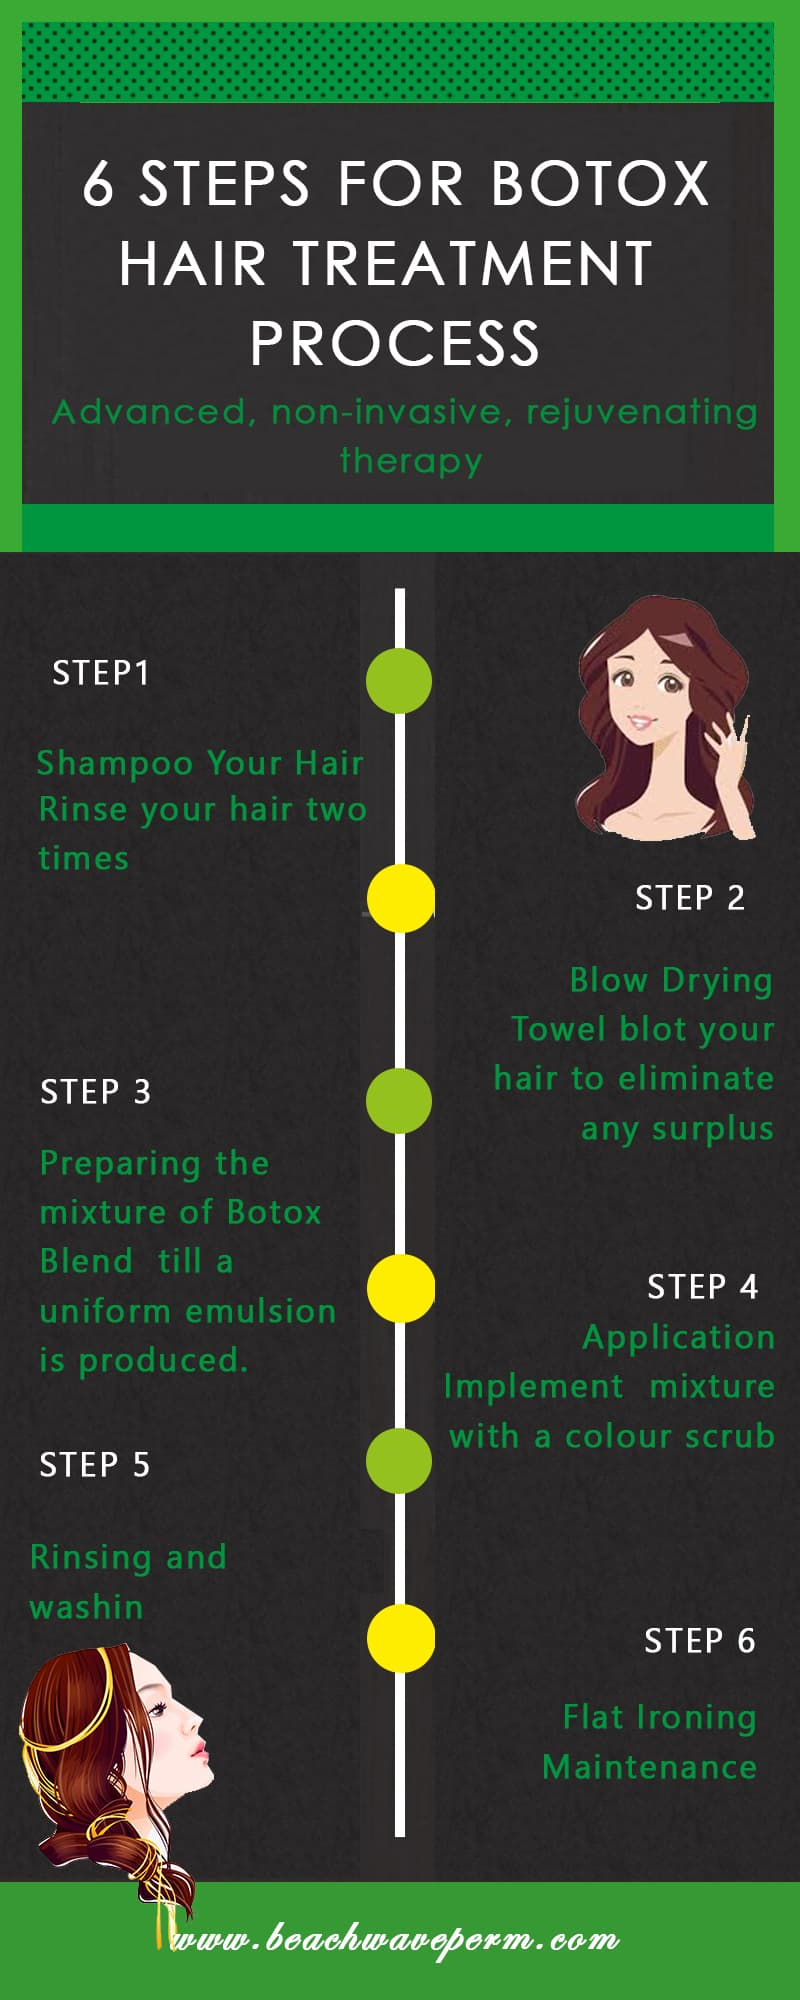 infographic How to apply Botox treatment for hair